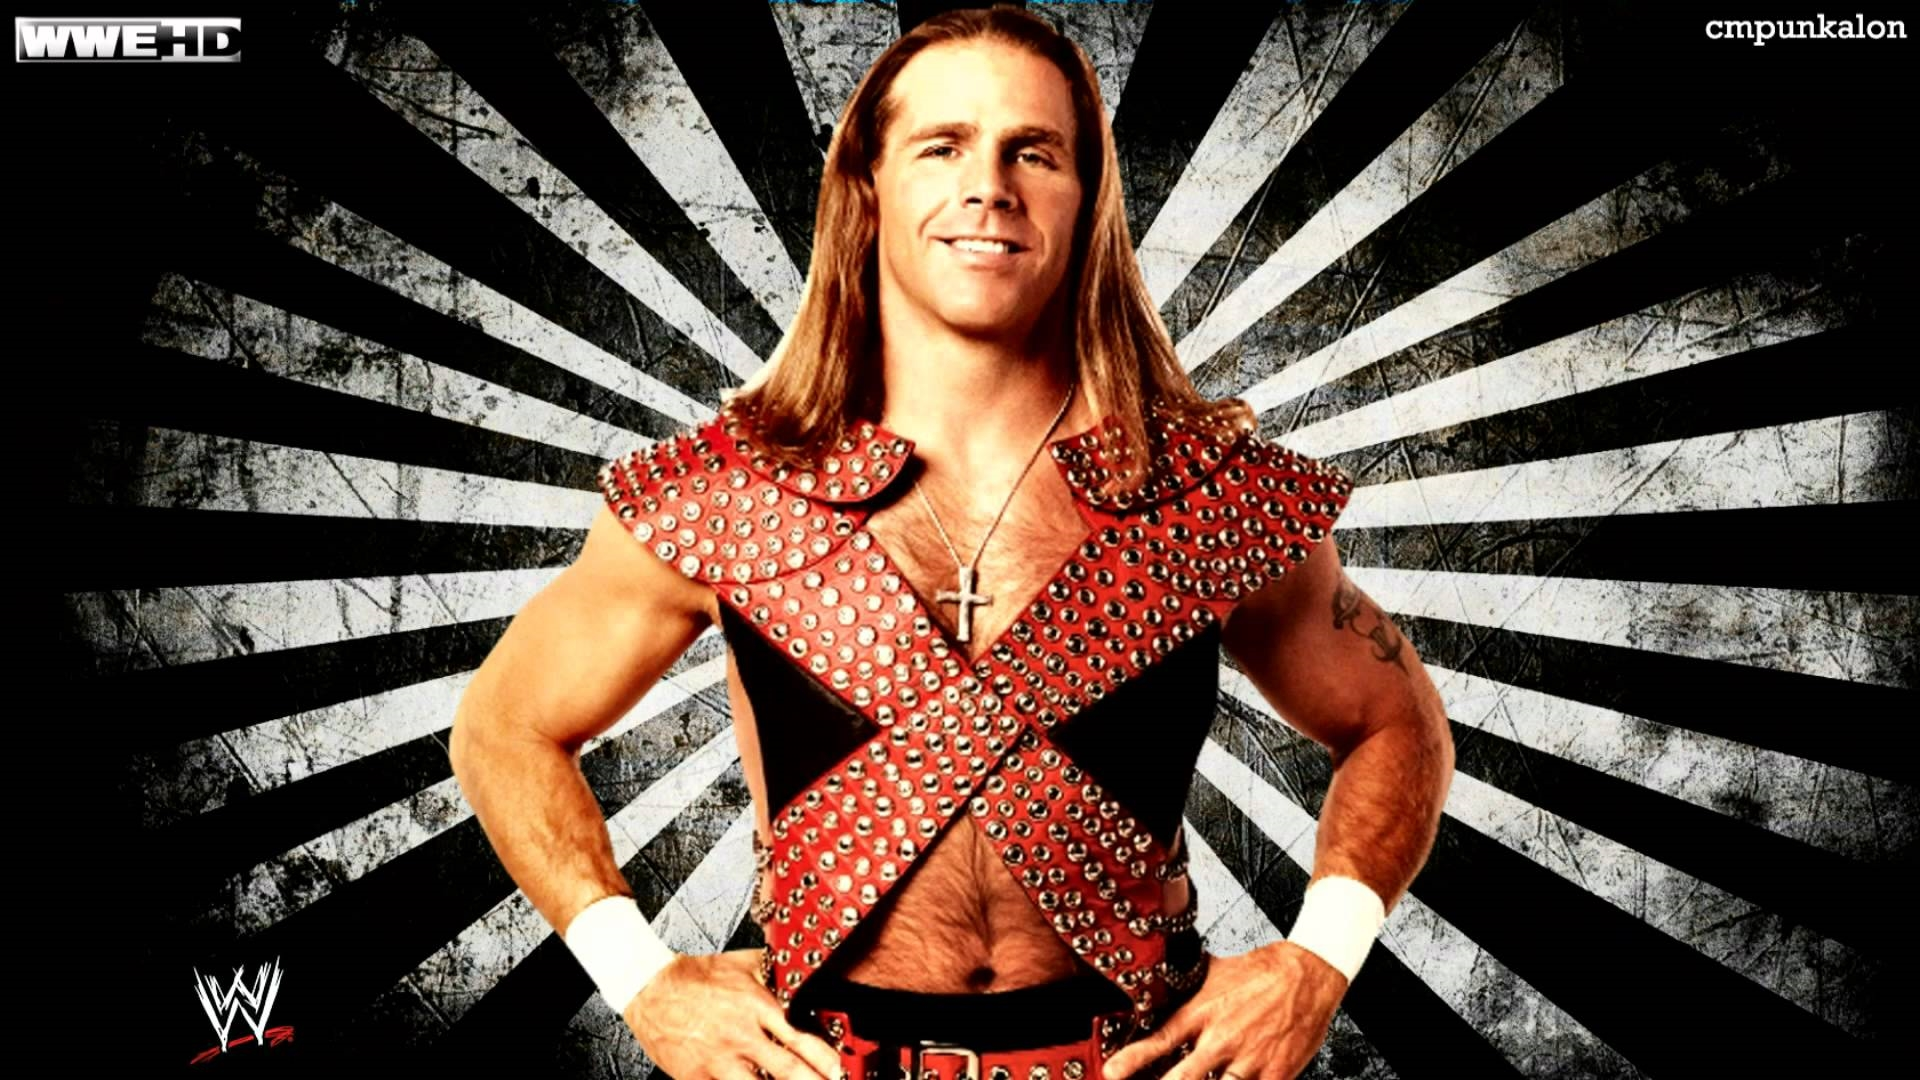 shawn michaels hbk wwe desktop background wallpaper hd